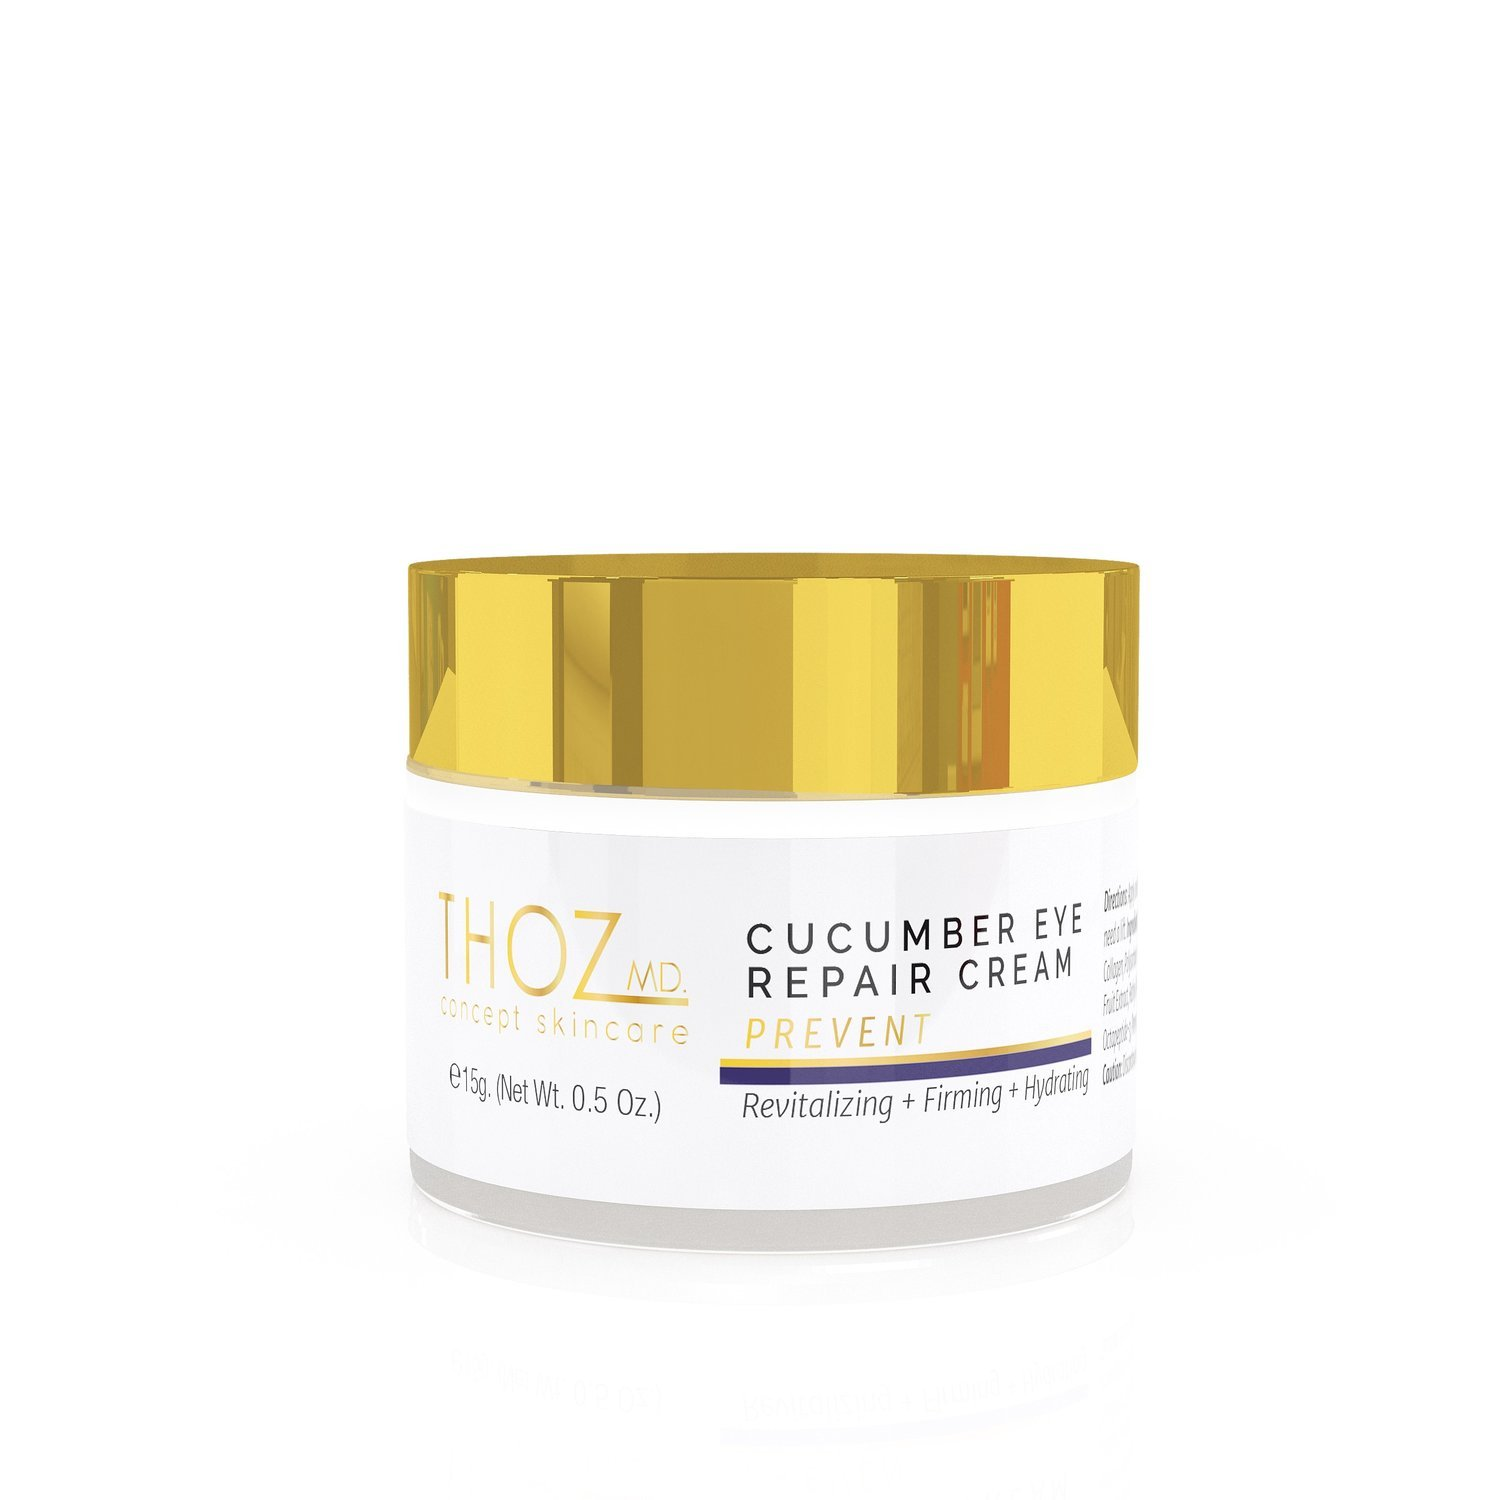 THOZ MD Revitalizing Cucumber Eye Repair Cream - firms and nourishes thin skin around the eyes with anti-aging vitamins, peptides & botanicals, 0.5 oz.